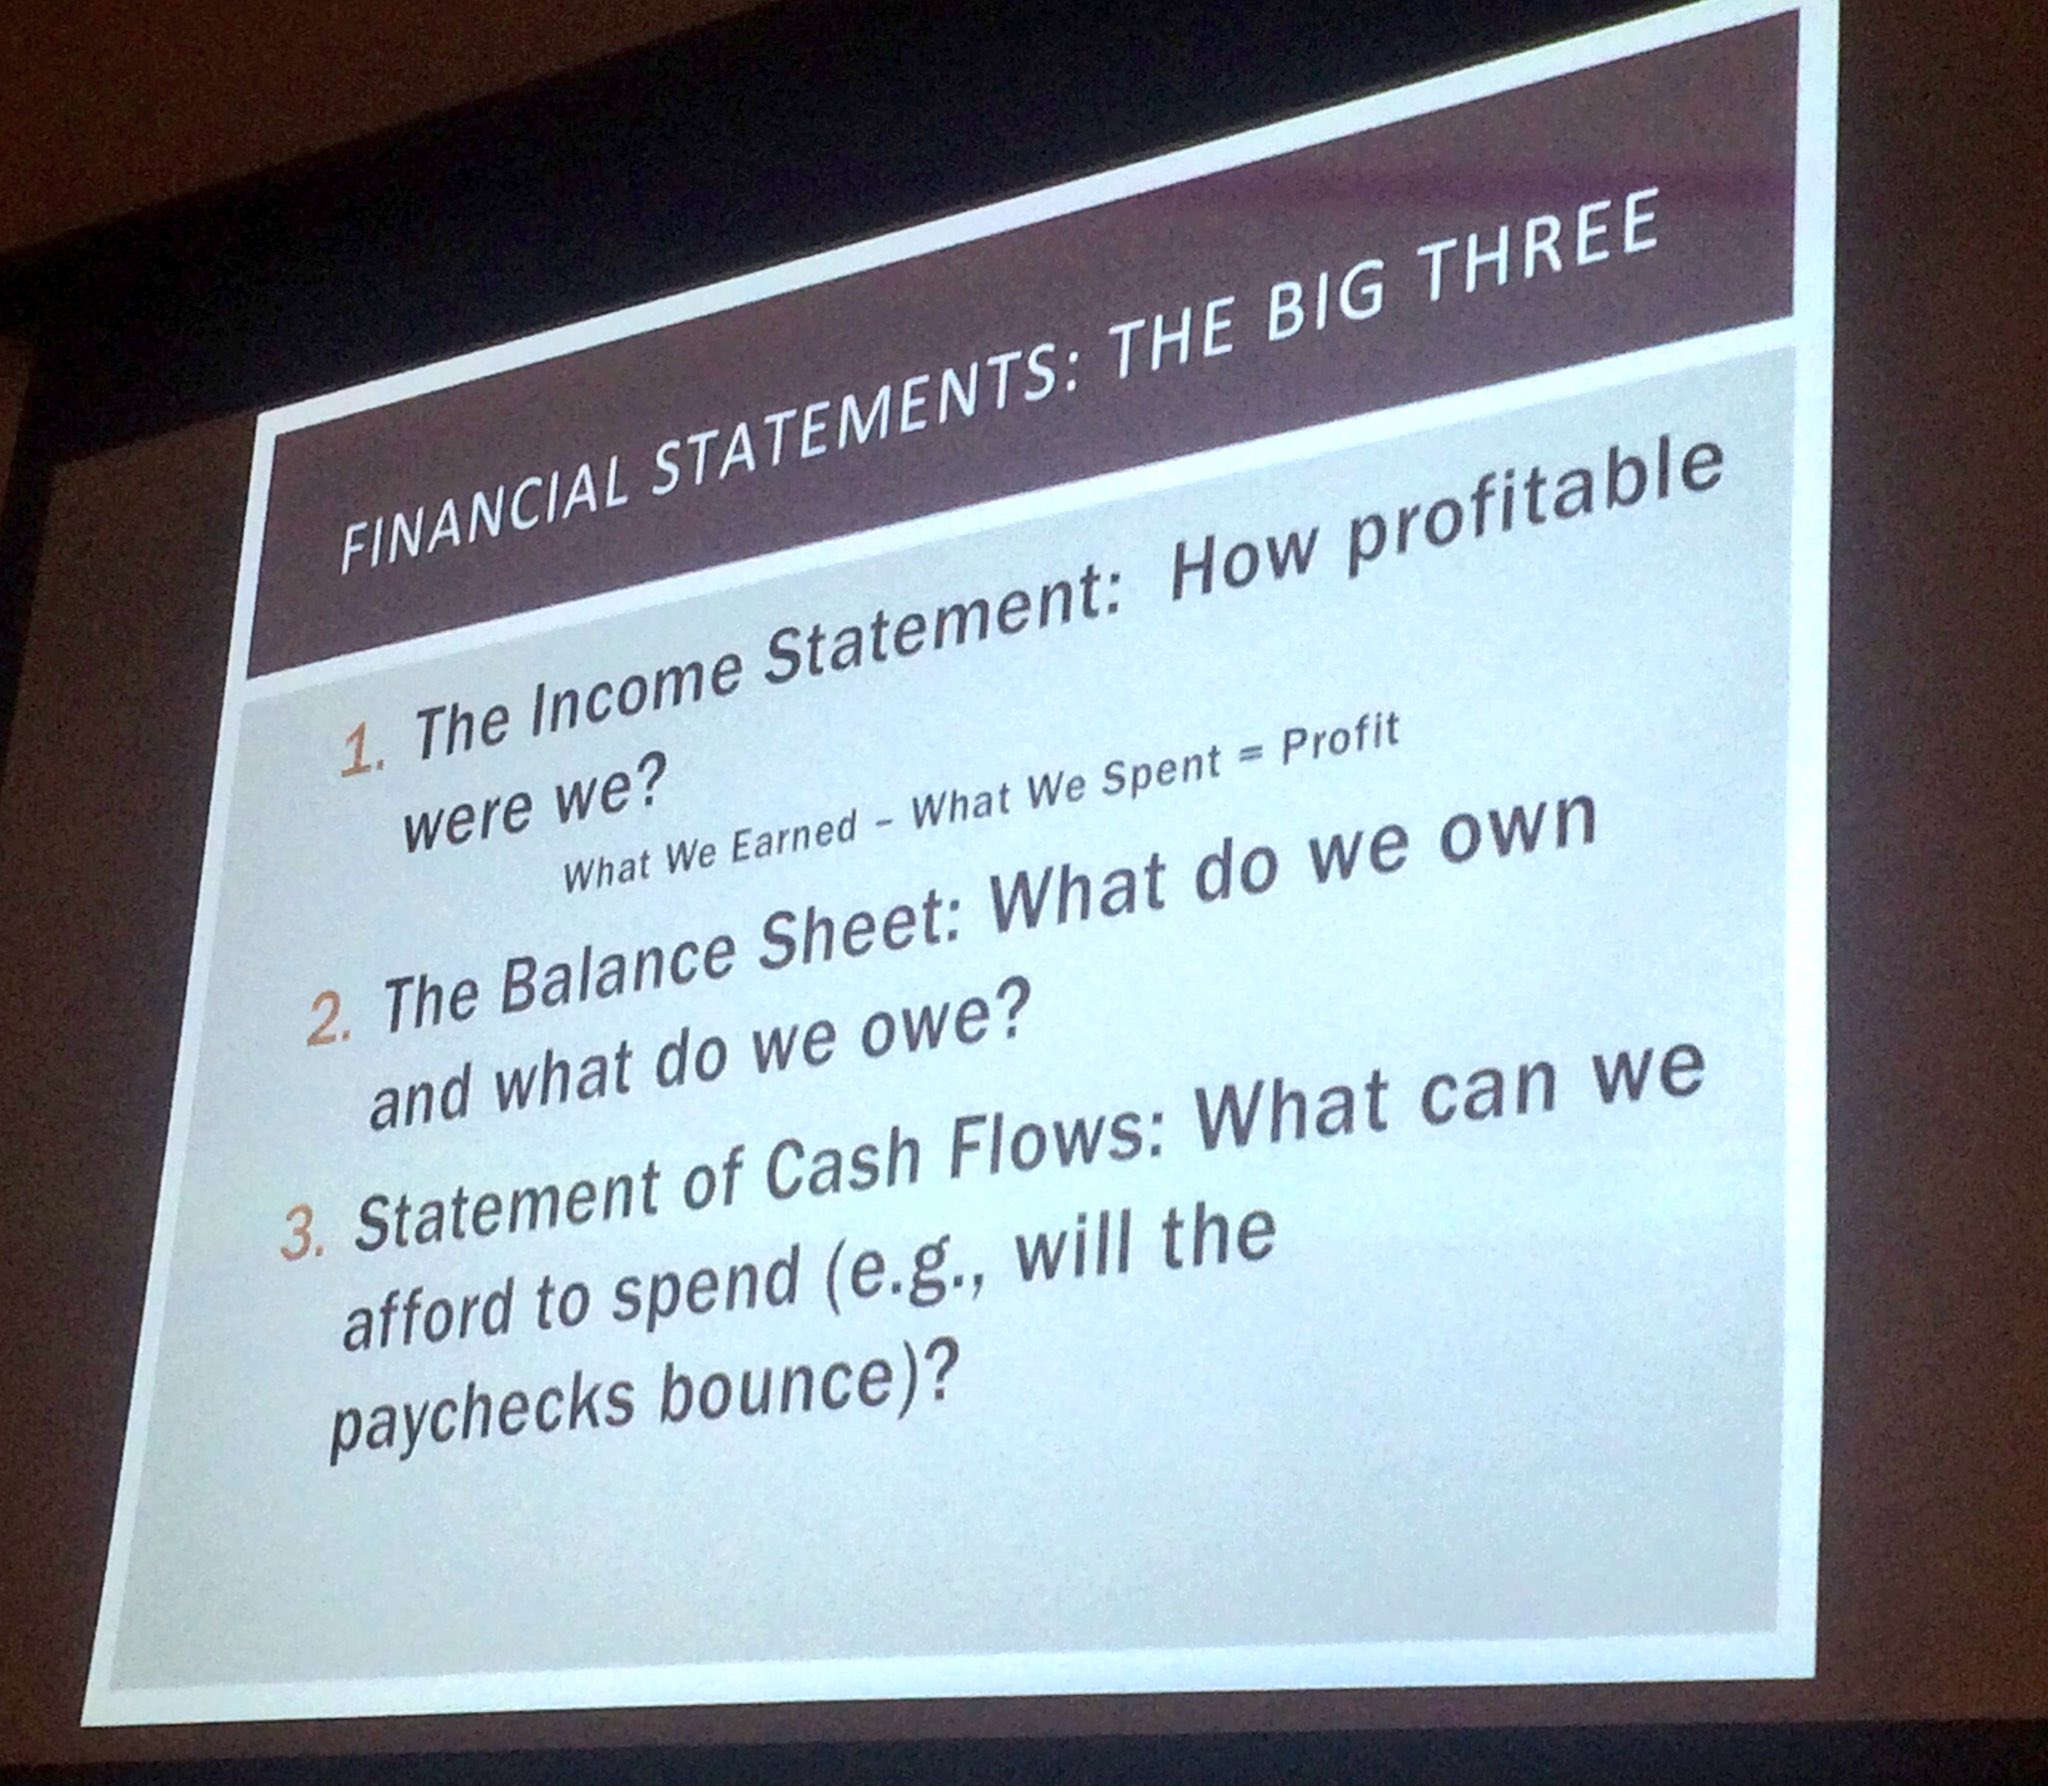 The Big Three financial statements: income statement, balance sheet, statement of cash flows. -Claudia McCowan #MoneyMatters https://t.co/k0zNSY8pQC